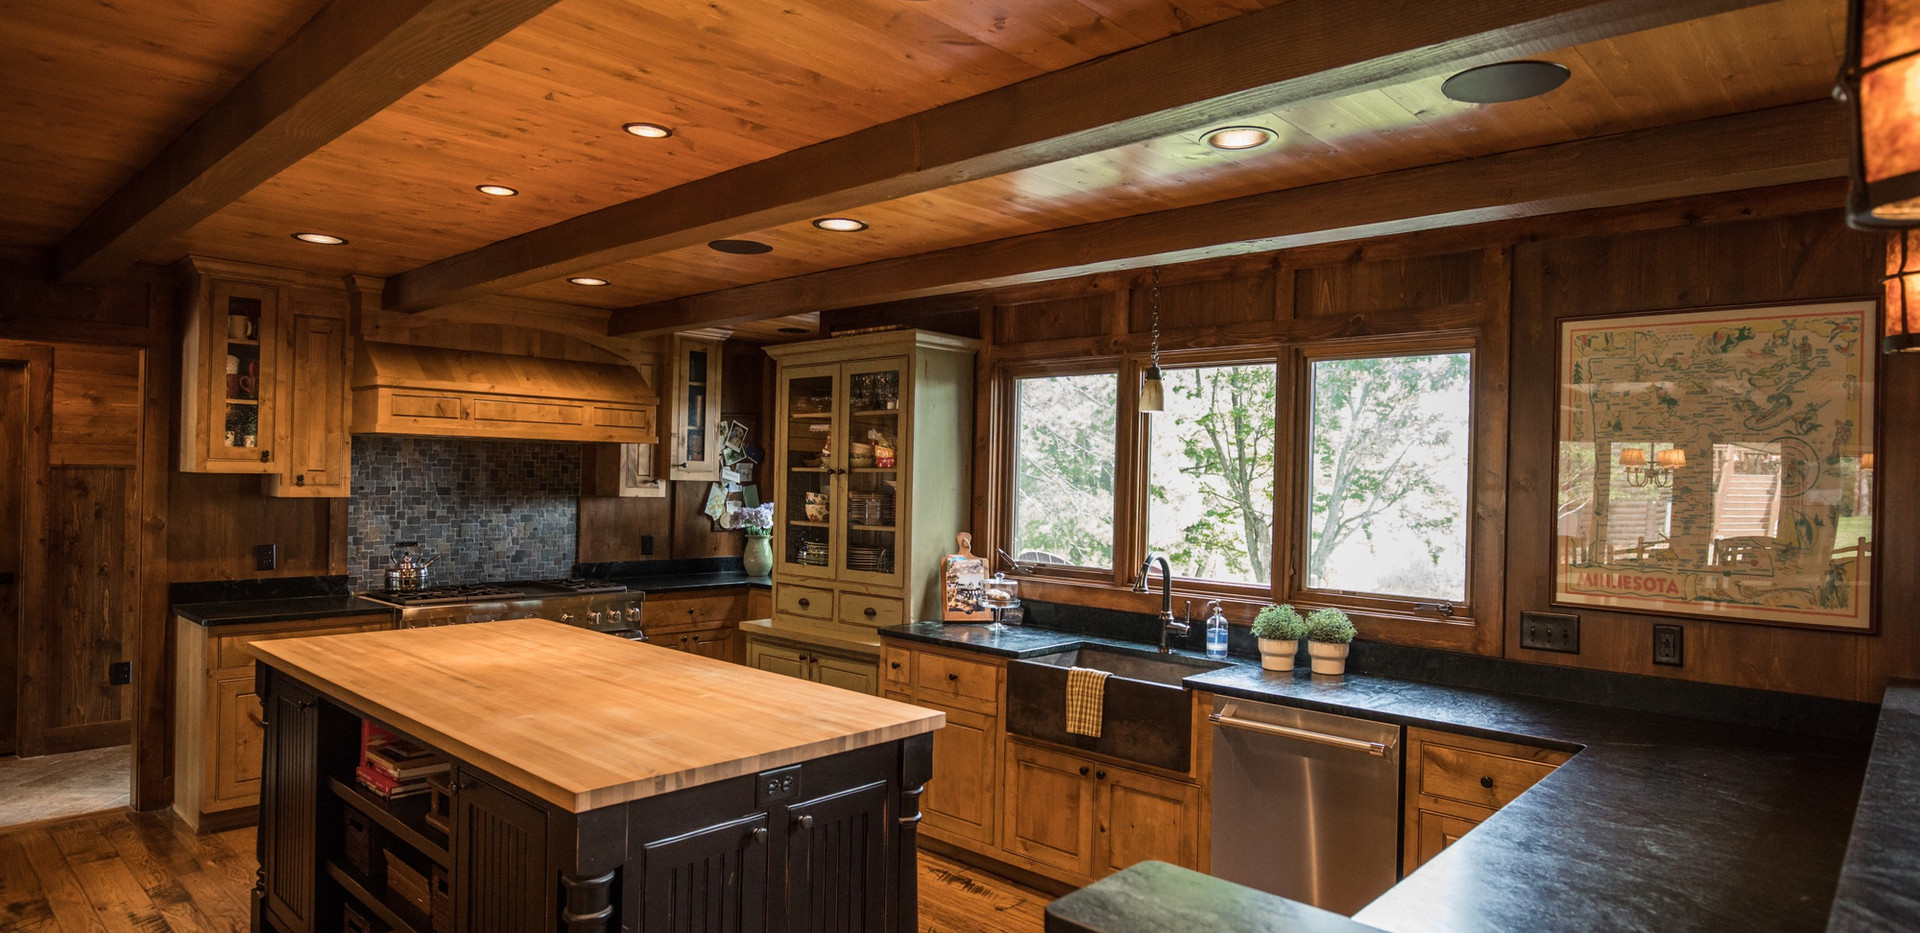 Traditional Cabin Chalet Kitchen